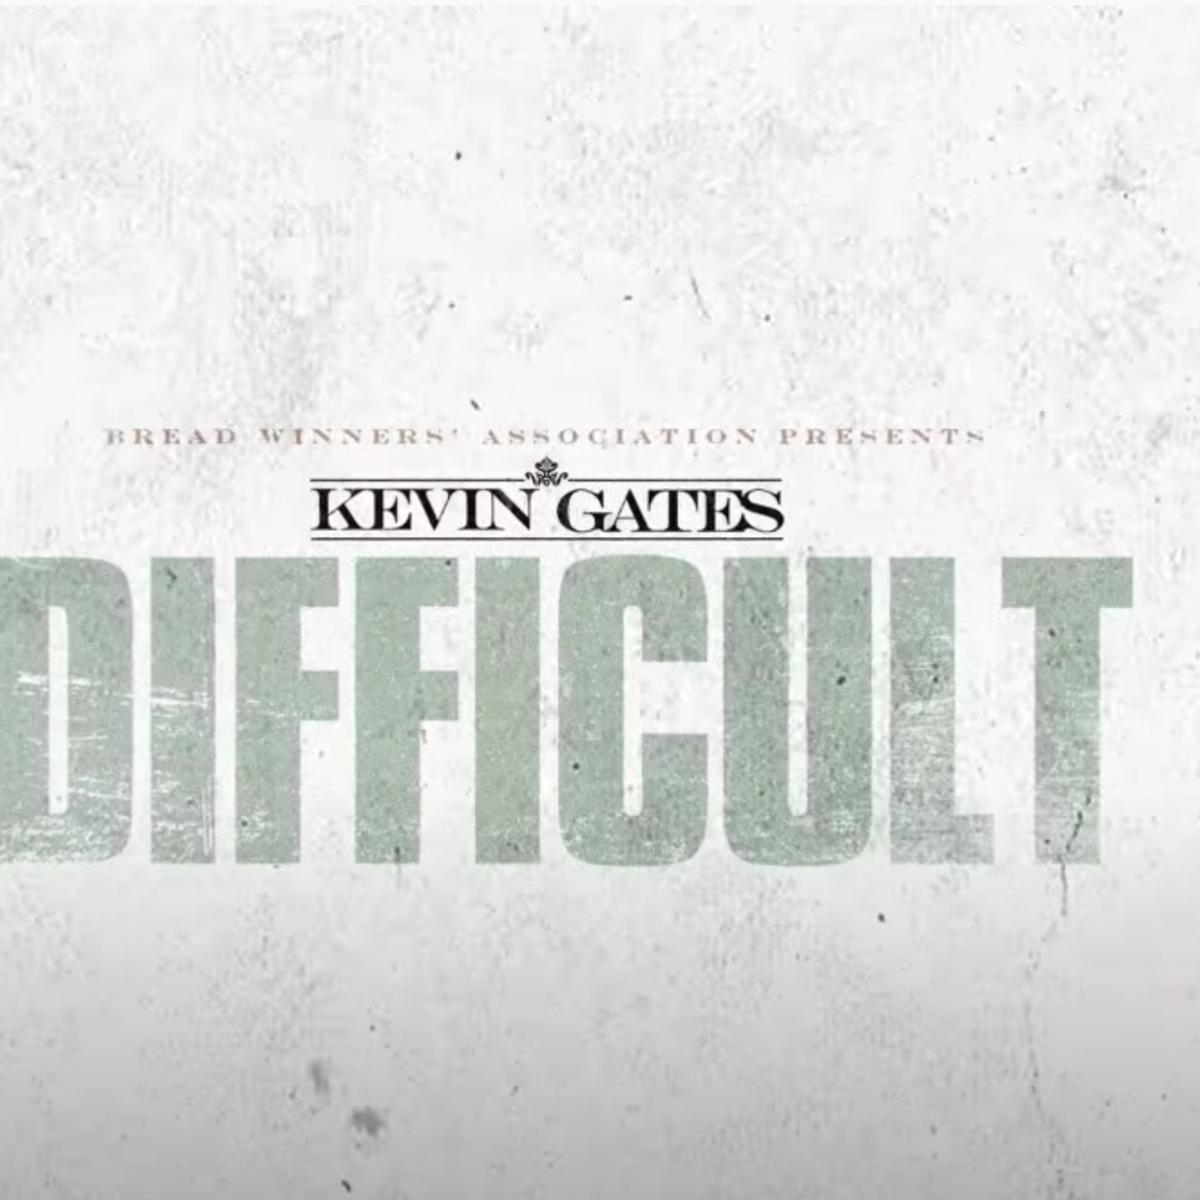 KEVIN GATES DIFFICULT